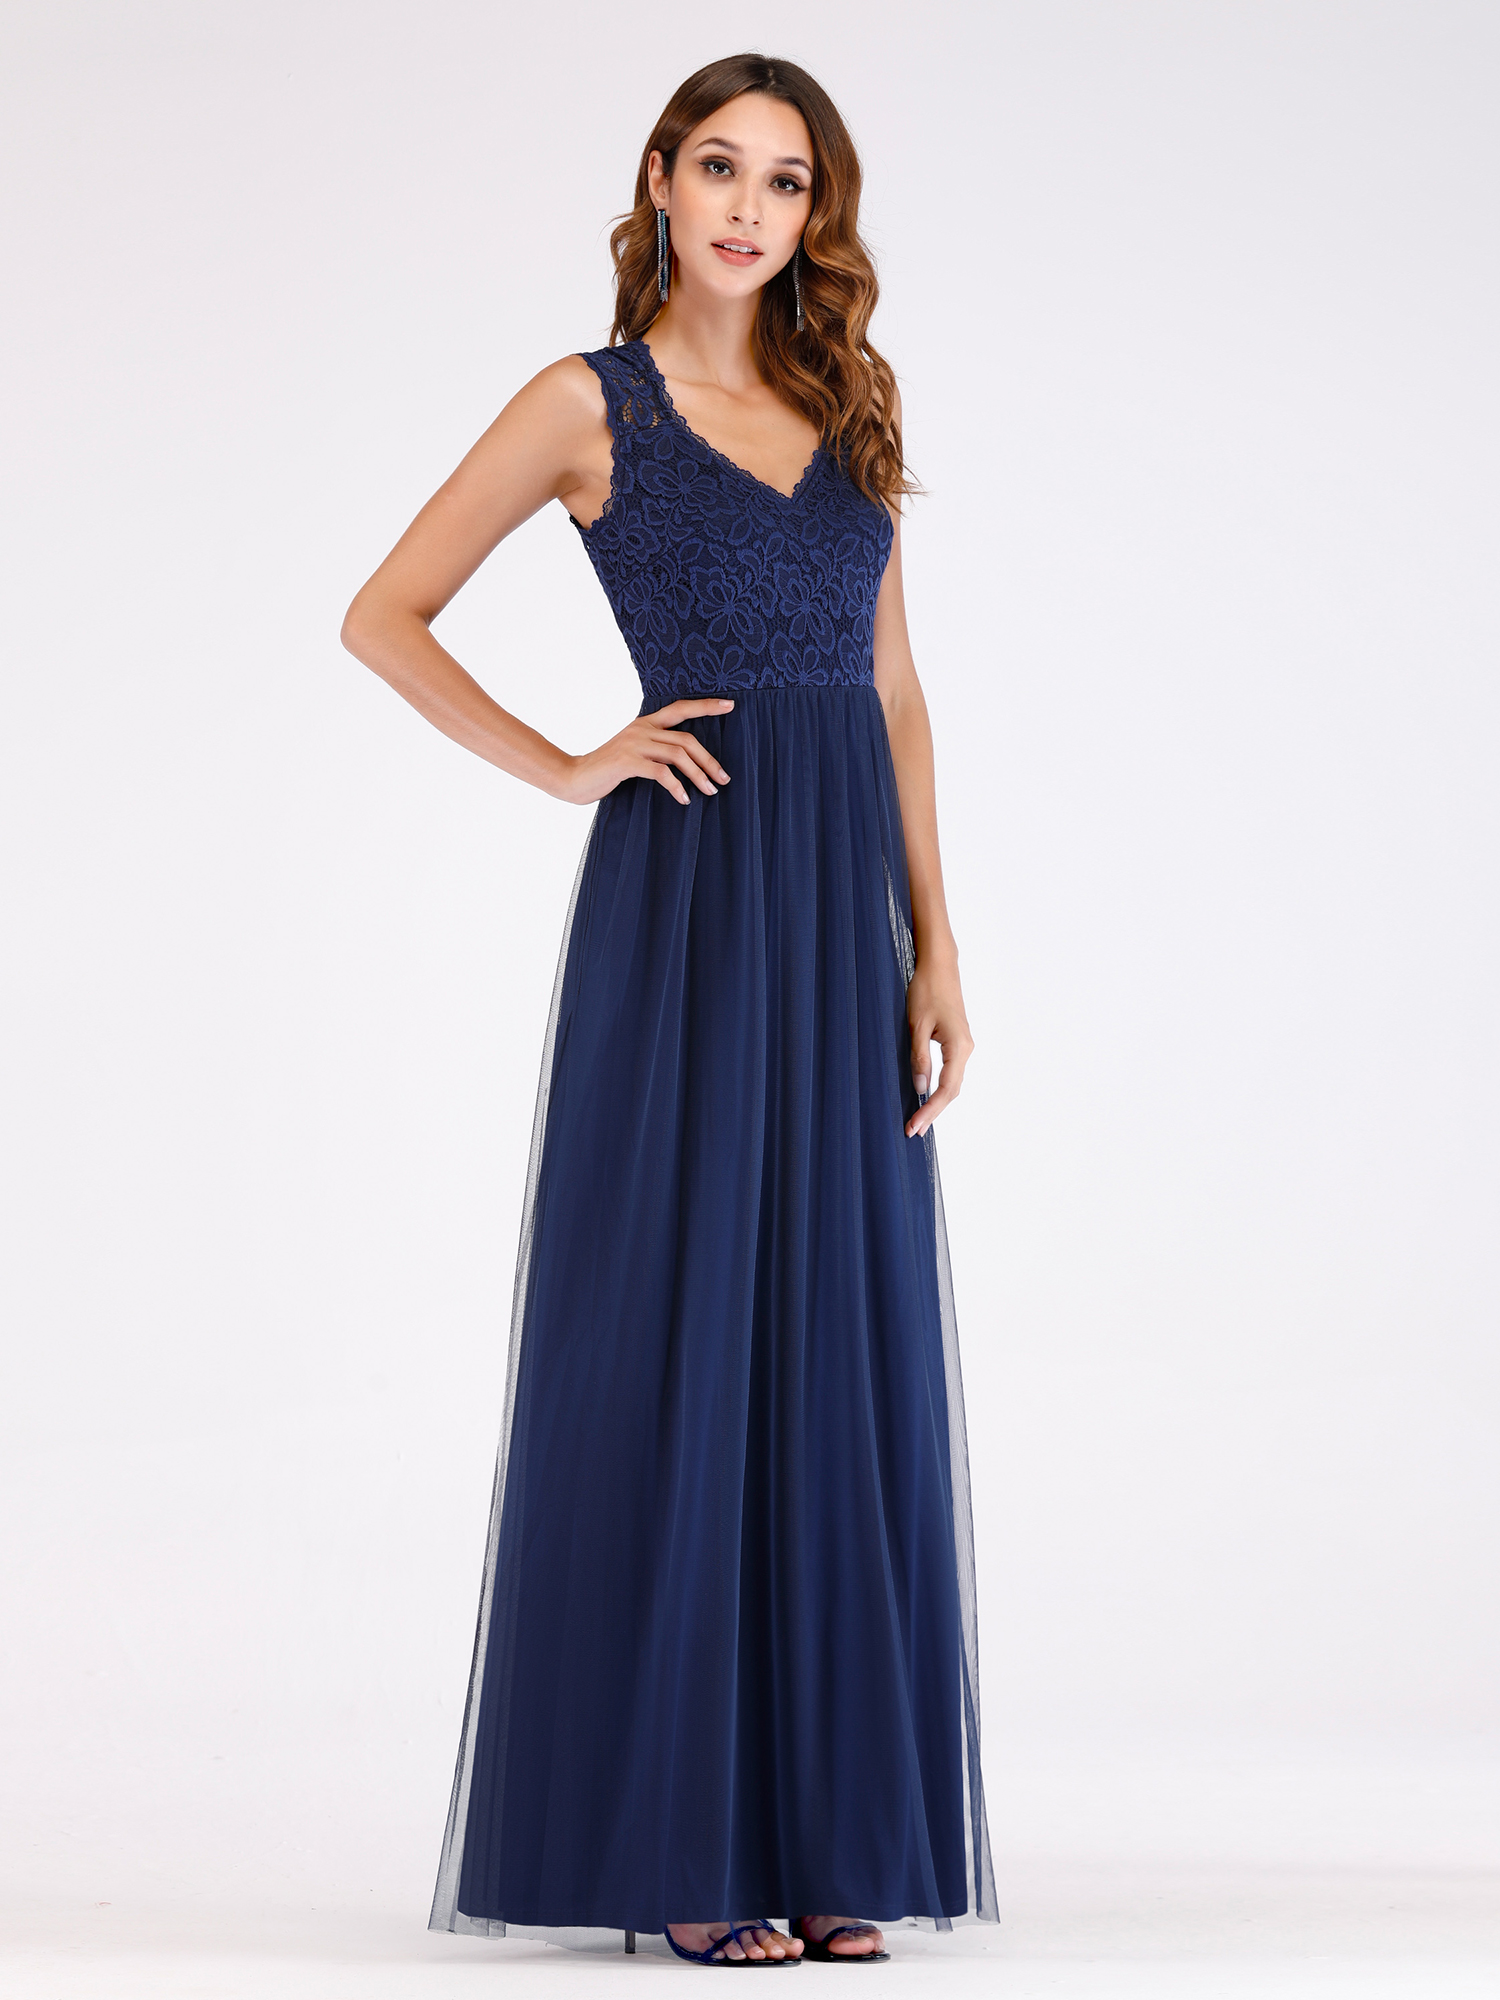 af17027960ad Ever-pretty - Ever-Pretty Womens Elegant Floral Lace Long Maxi Prom Dance Party  Dresses for Women 07509 Navy Blue US8 - Walmart.com